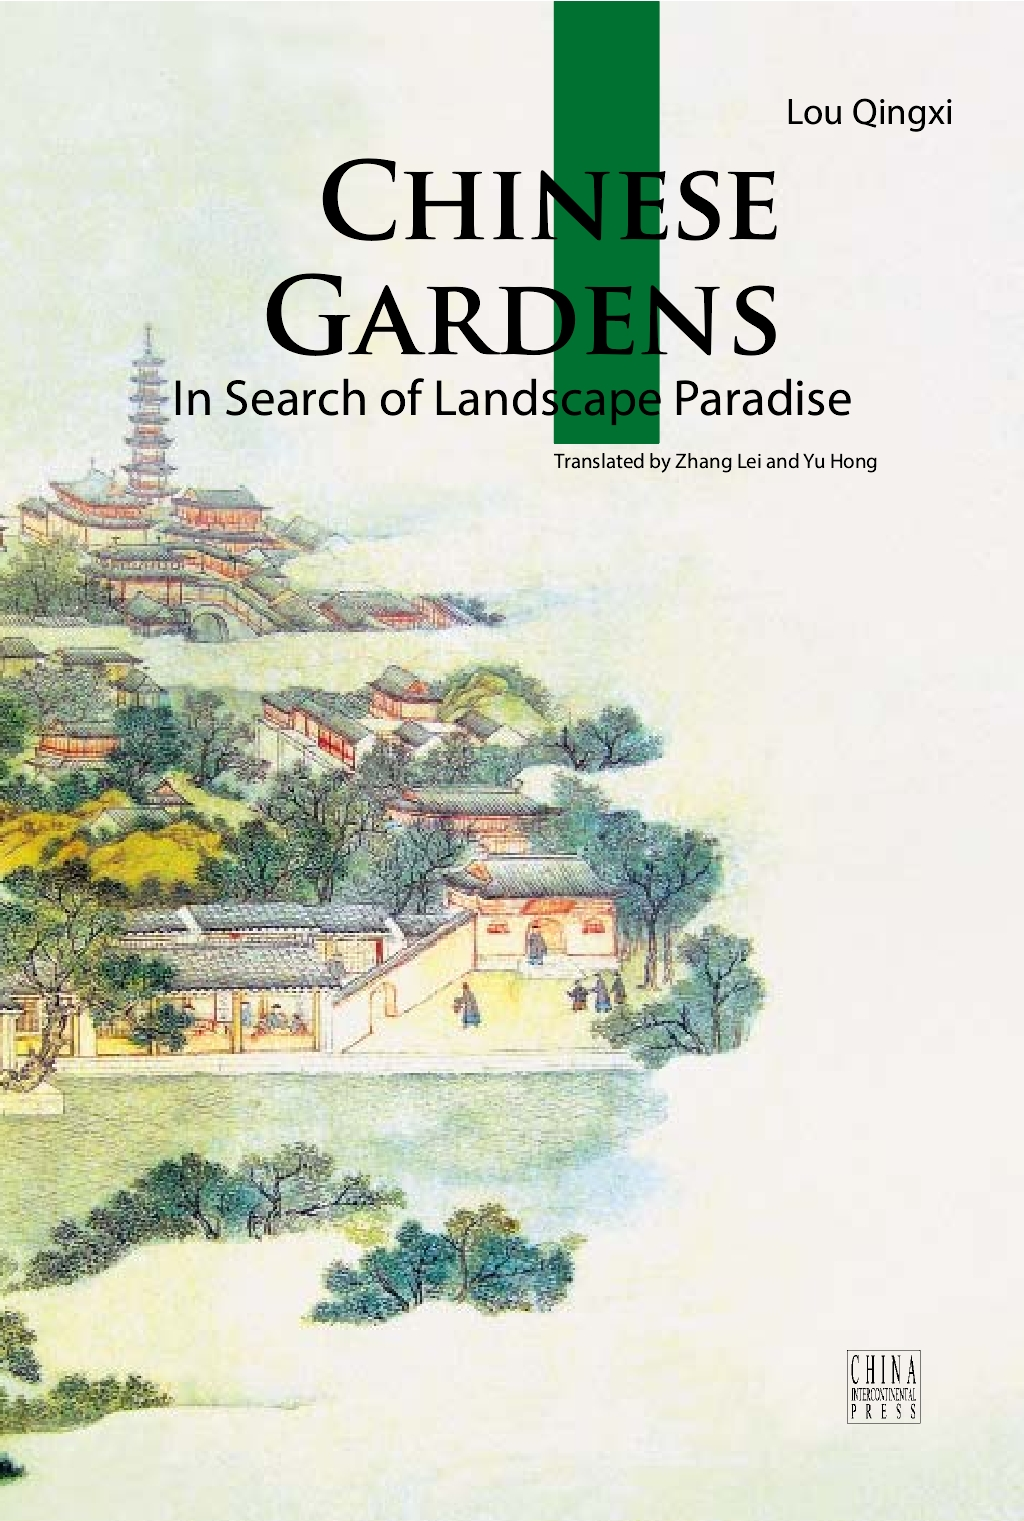 In Search of Landscape Paradise